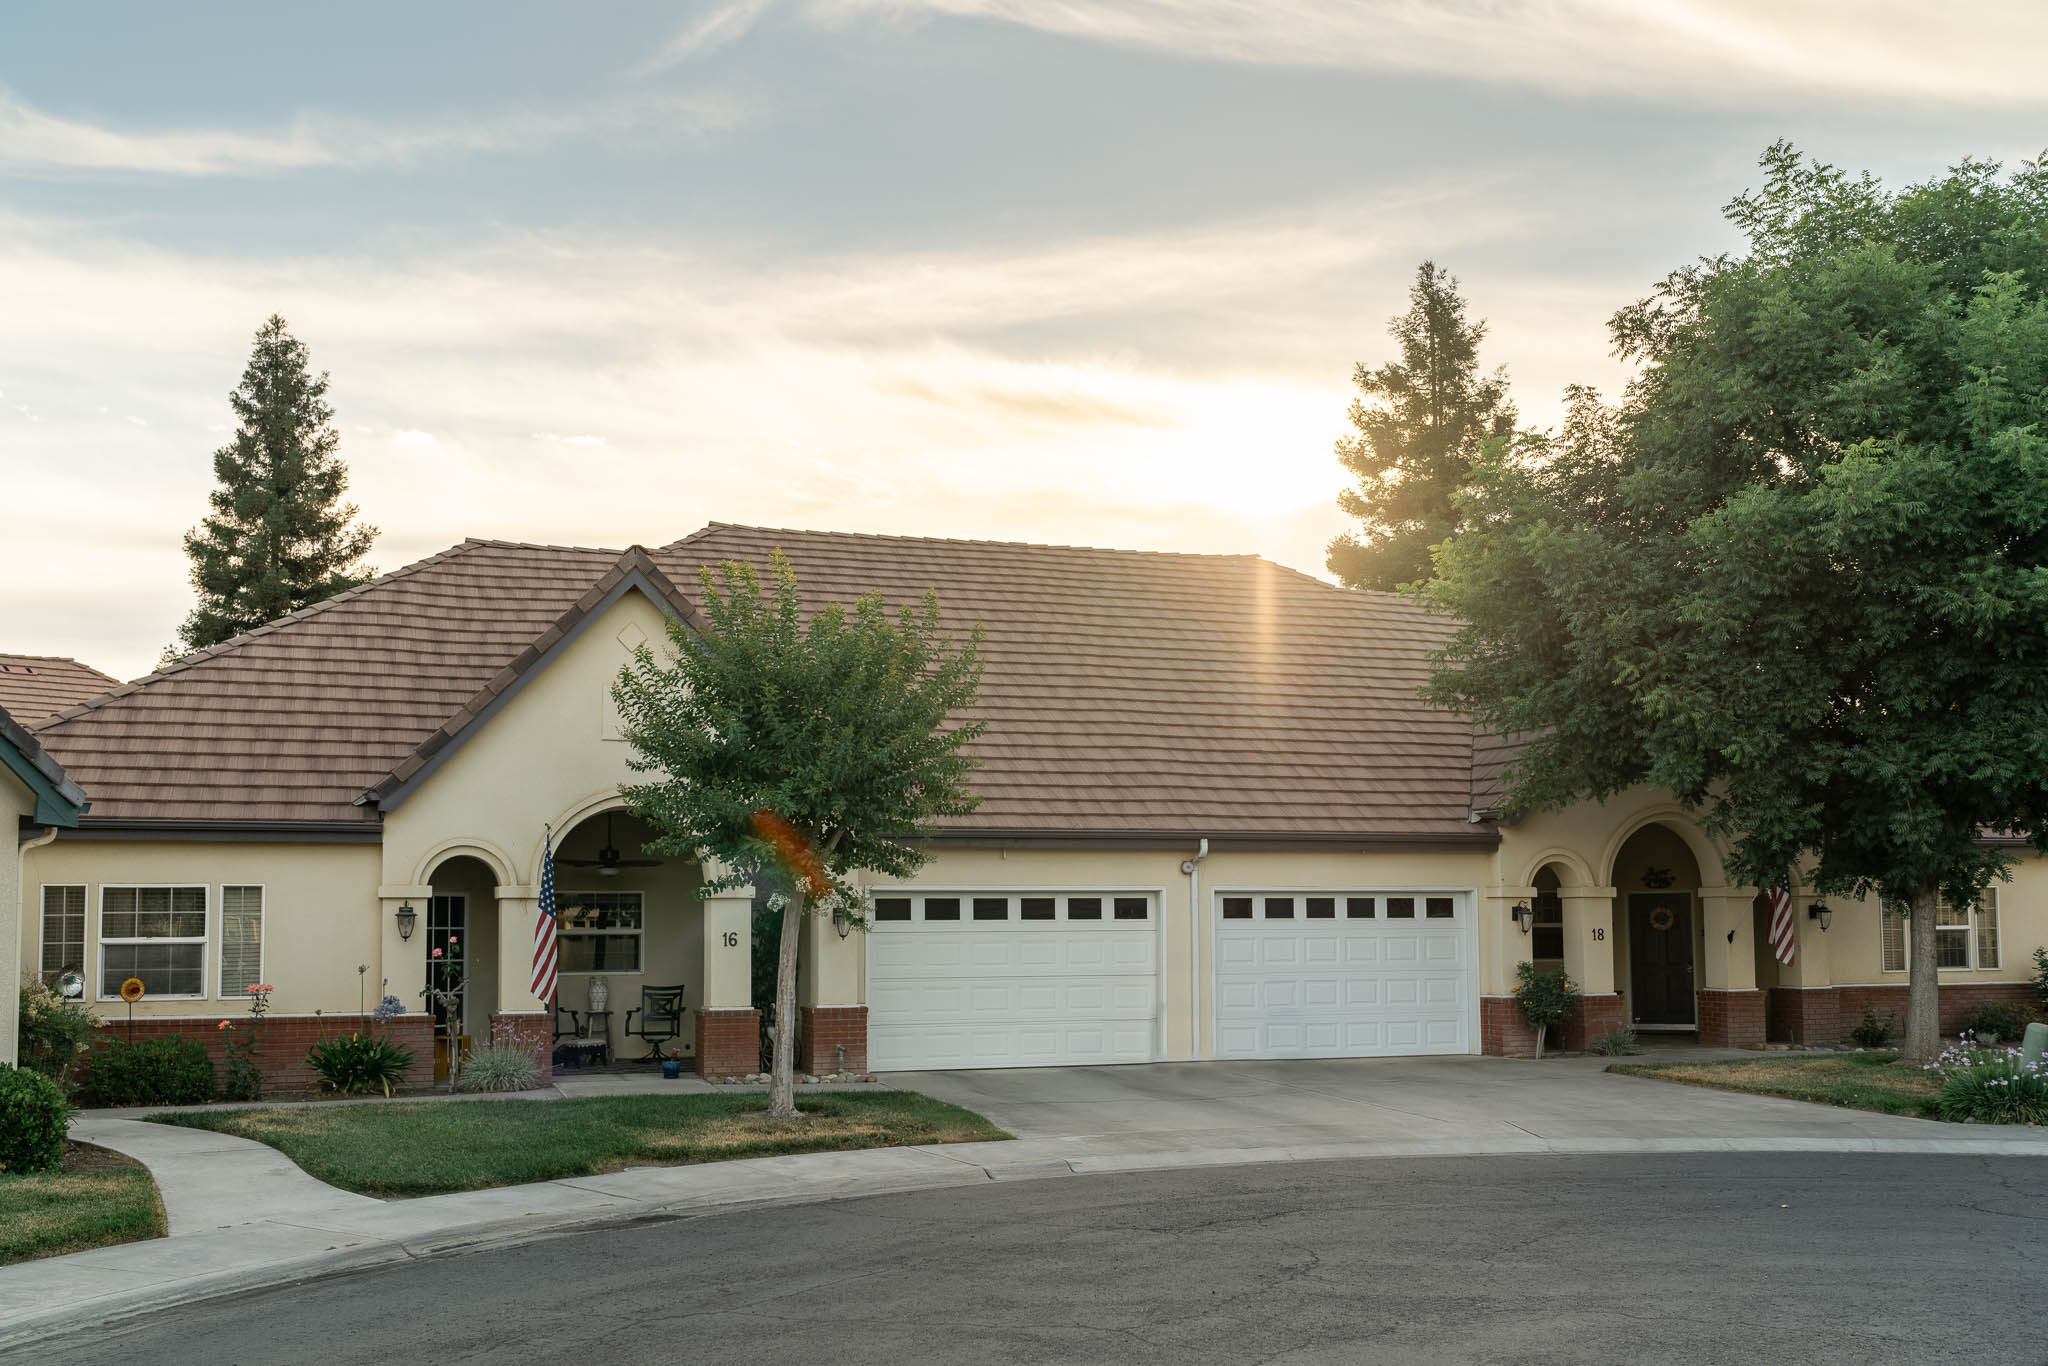 Front View of Townhome at Sierra Village